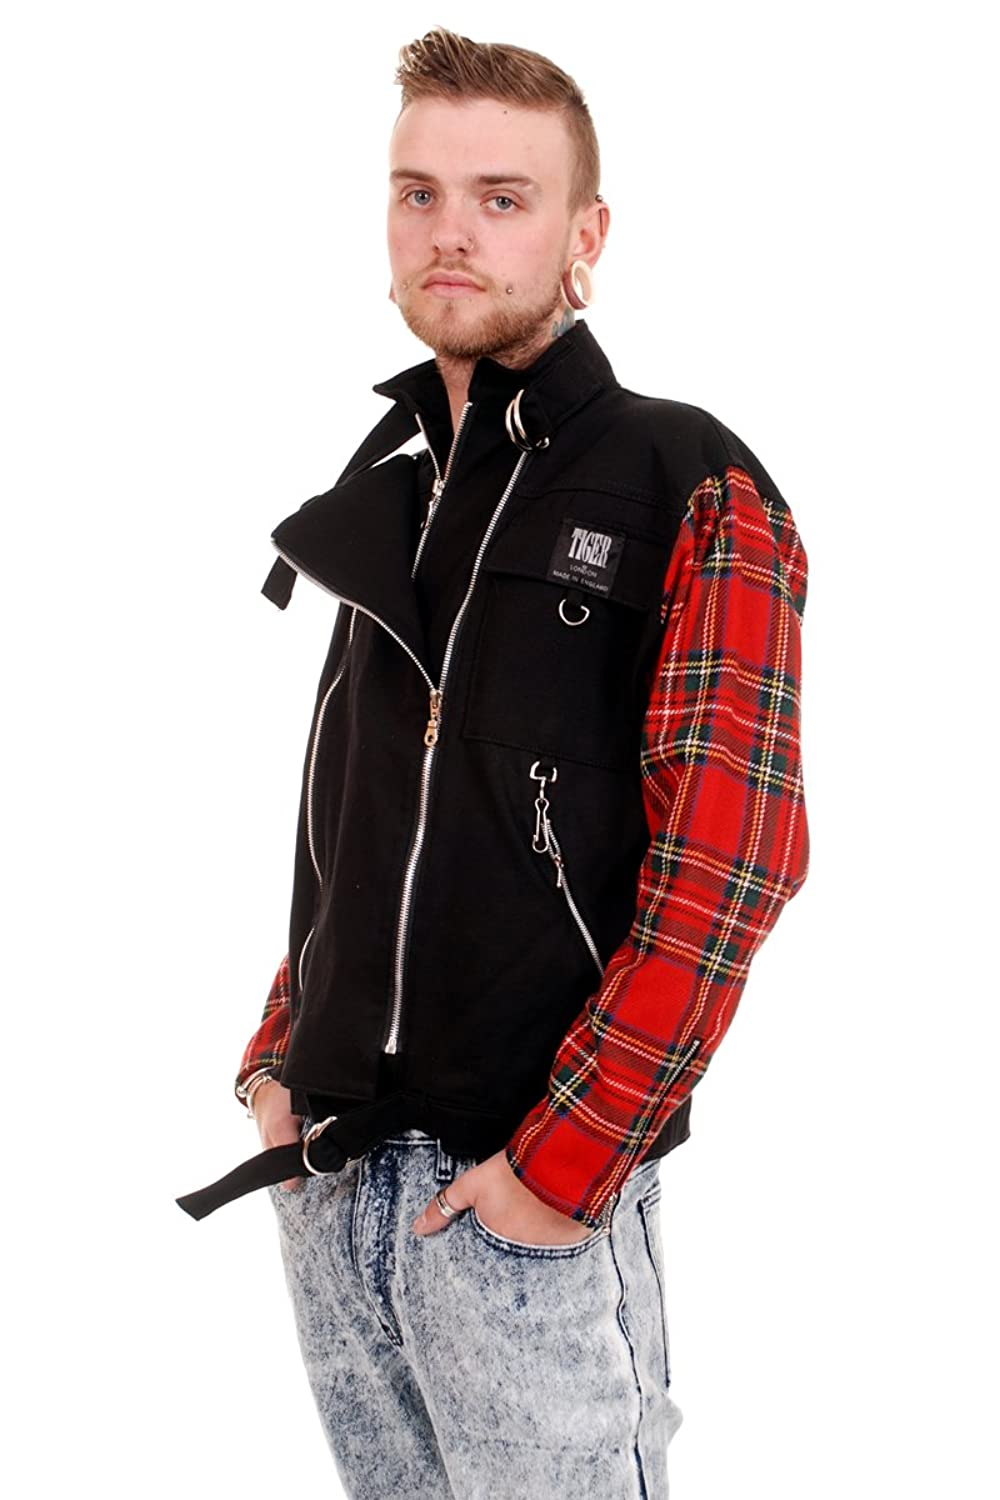 Black Punk Zip Jacket with Red Tartan Sleeves by Tiger of London (Small)